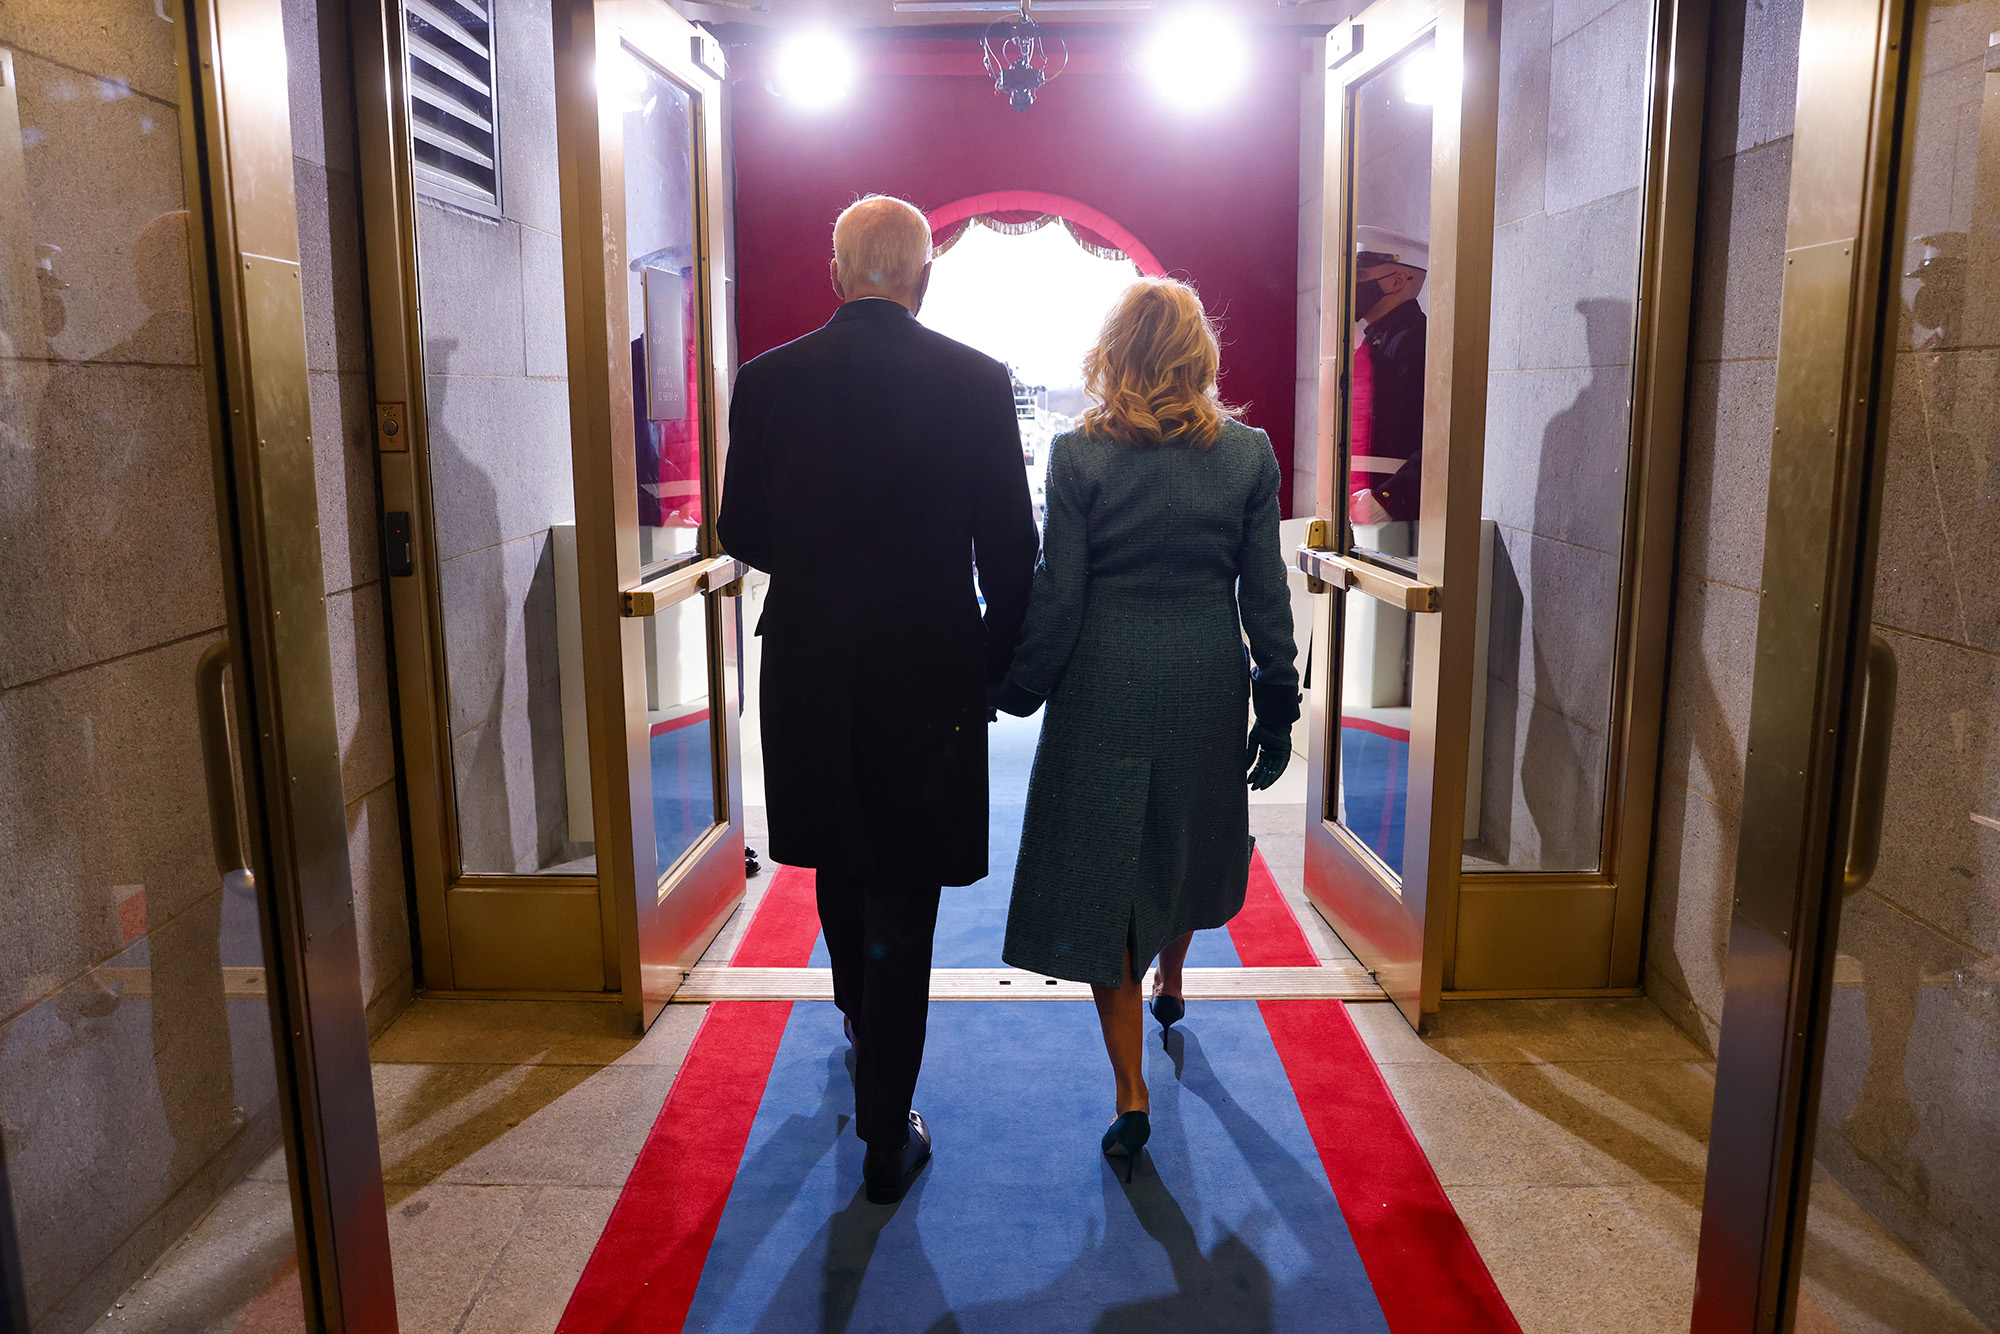 President-elect Joe Biden and Dr. Jill Biden arrive to Biden's inauguration on the West Front of the Capitol on Jan. 20, 2021, in Washington. (Win McNamee/Getty Images)